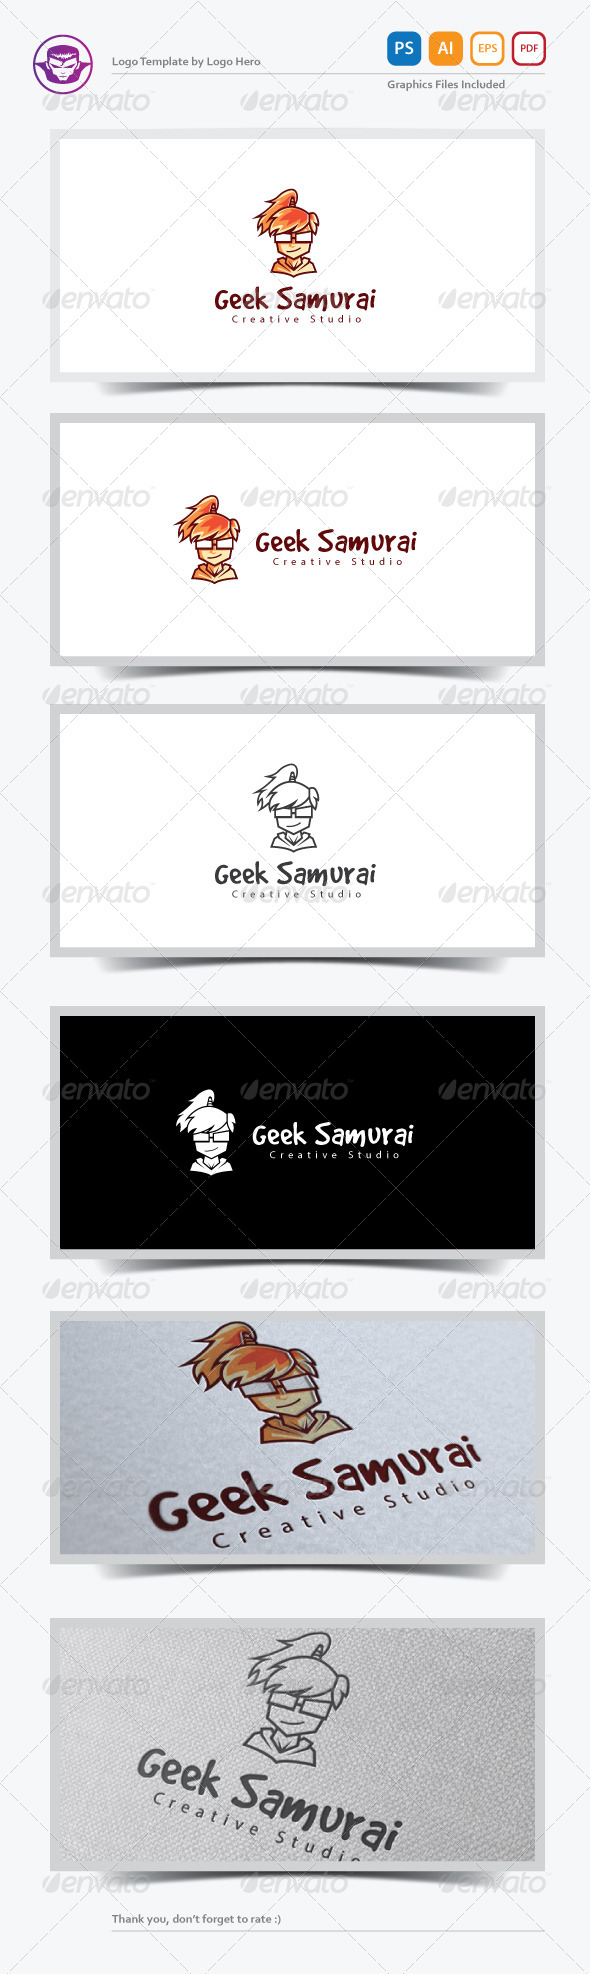 GraphicRiver Geek Samurai Logo Template 7211654